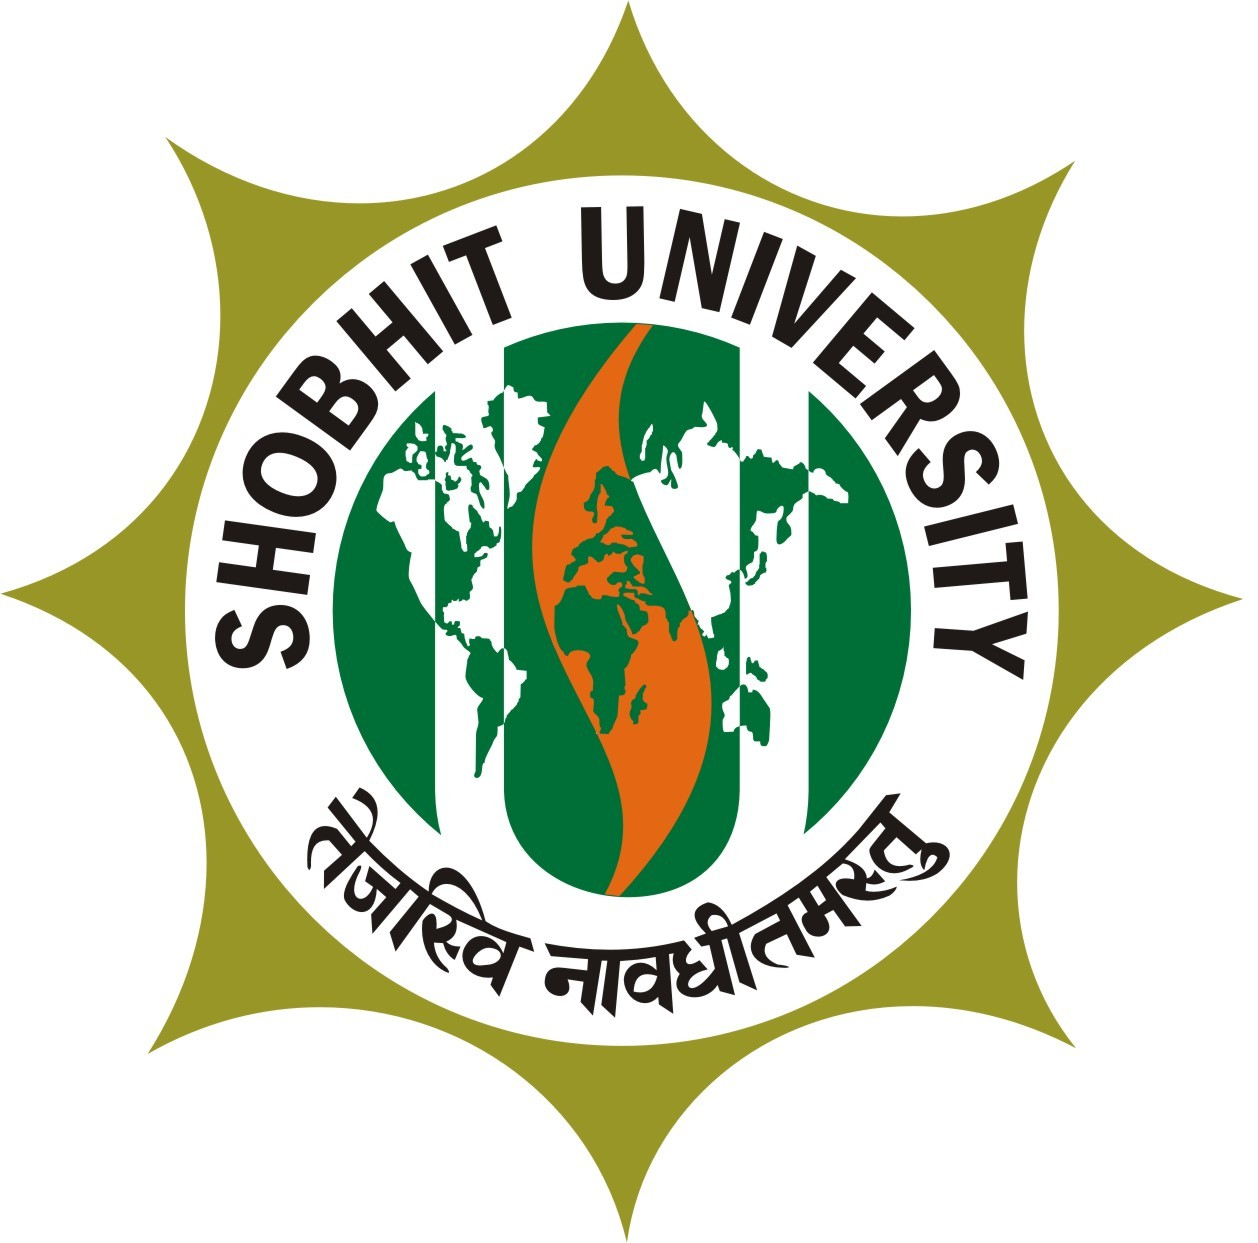 SHOBIT INSTITUTE OF ENGINEERING & TECHNOLOGY, MEERUT